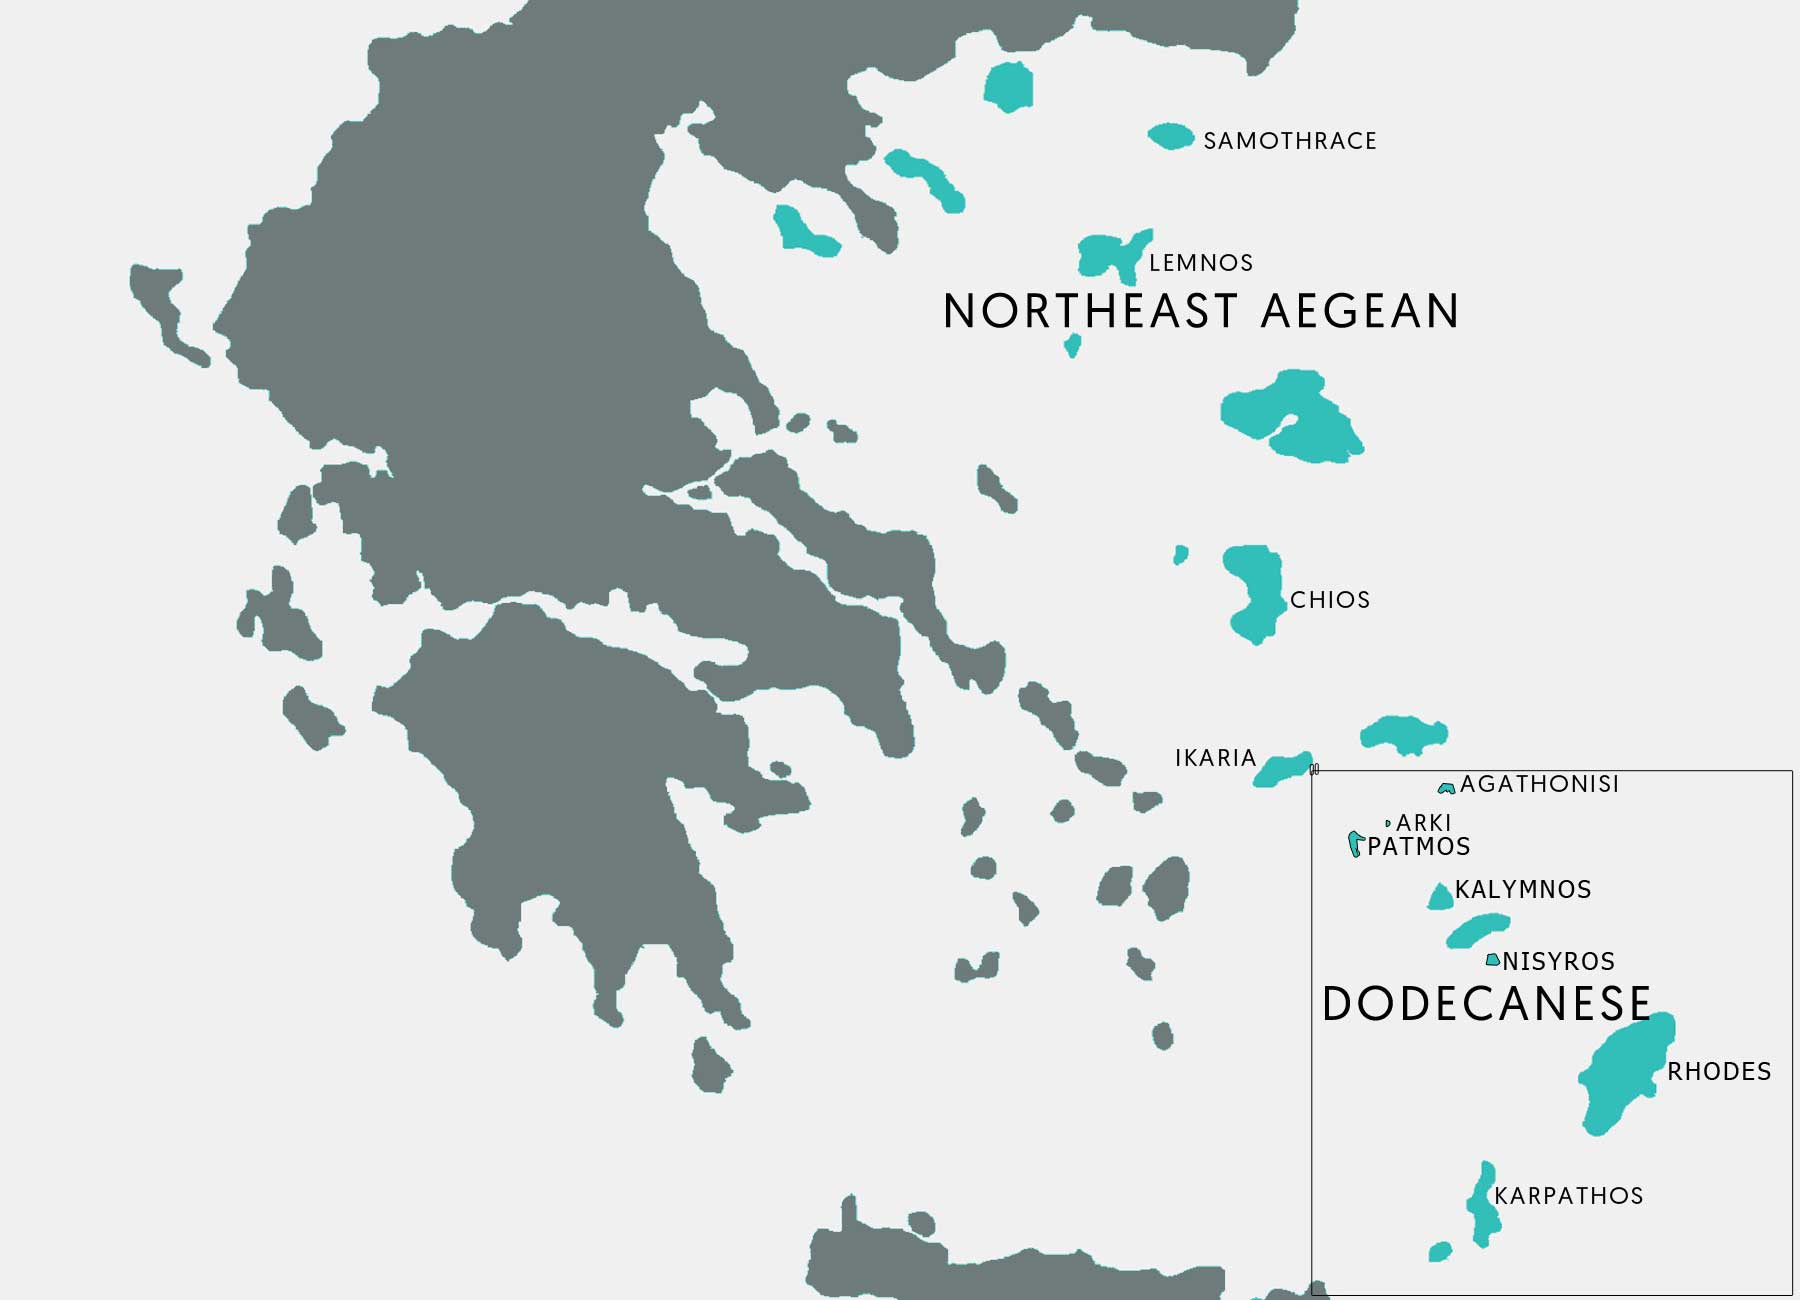 The Greek Islands Dodecanese and Northeast Aegean Destinations